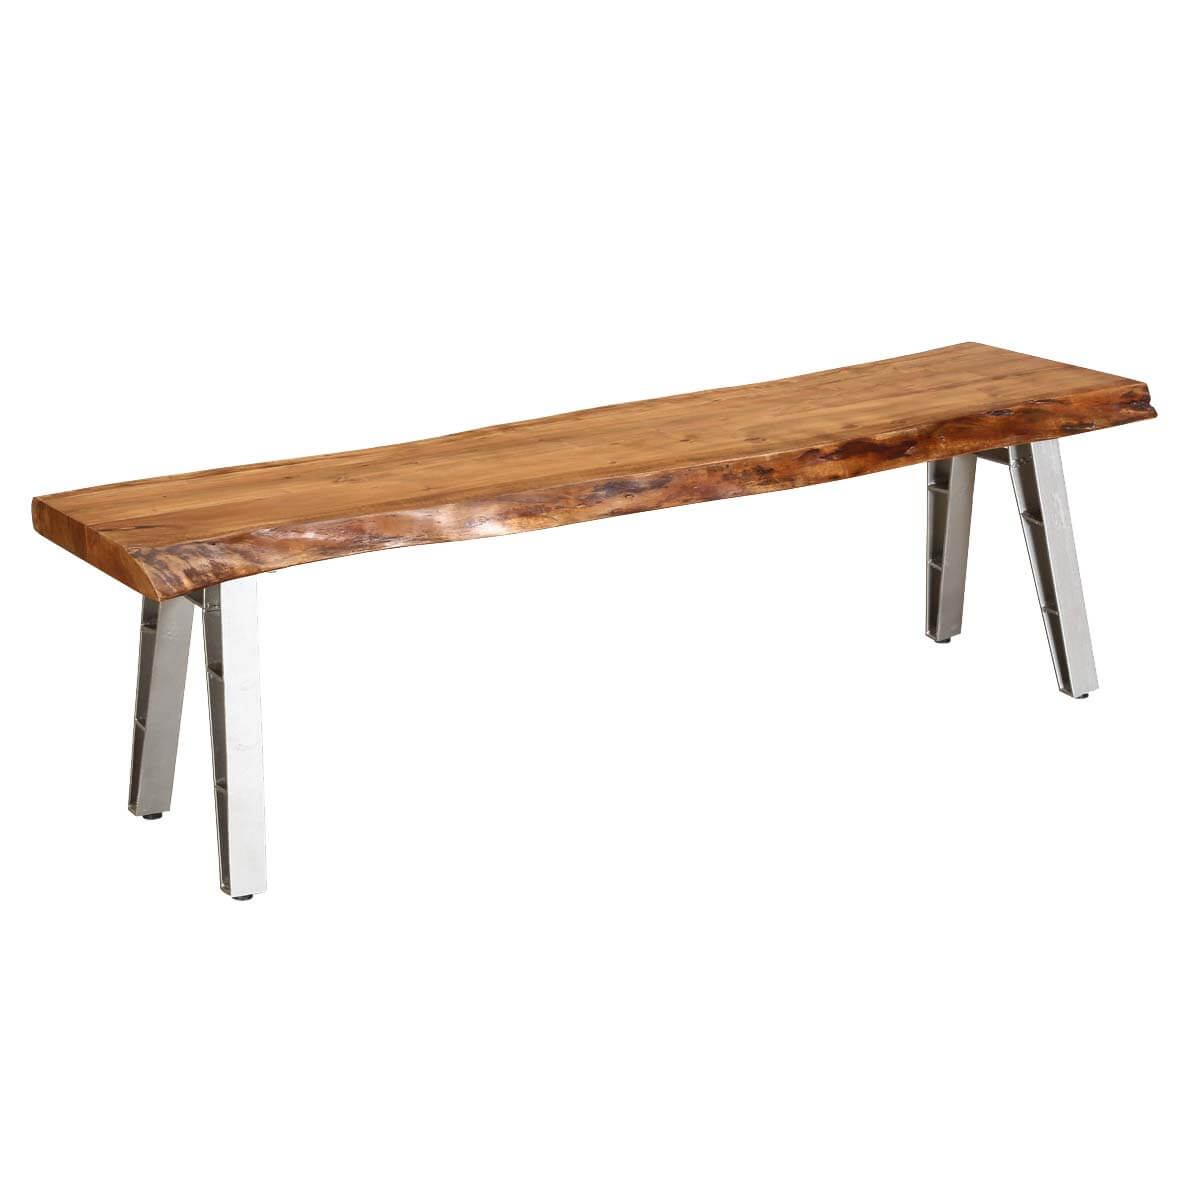 Madrid Live Edge Wooden Bench With Iron Legs